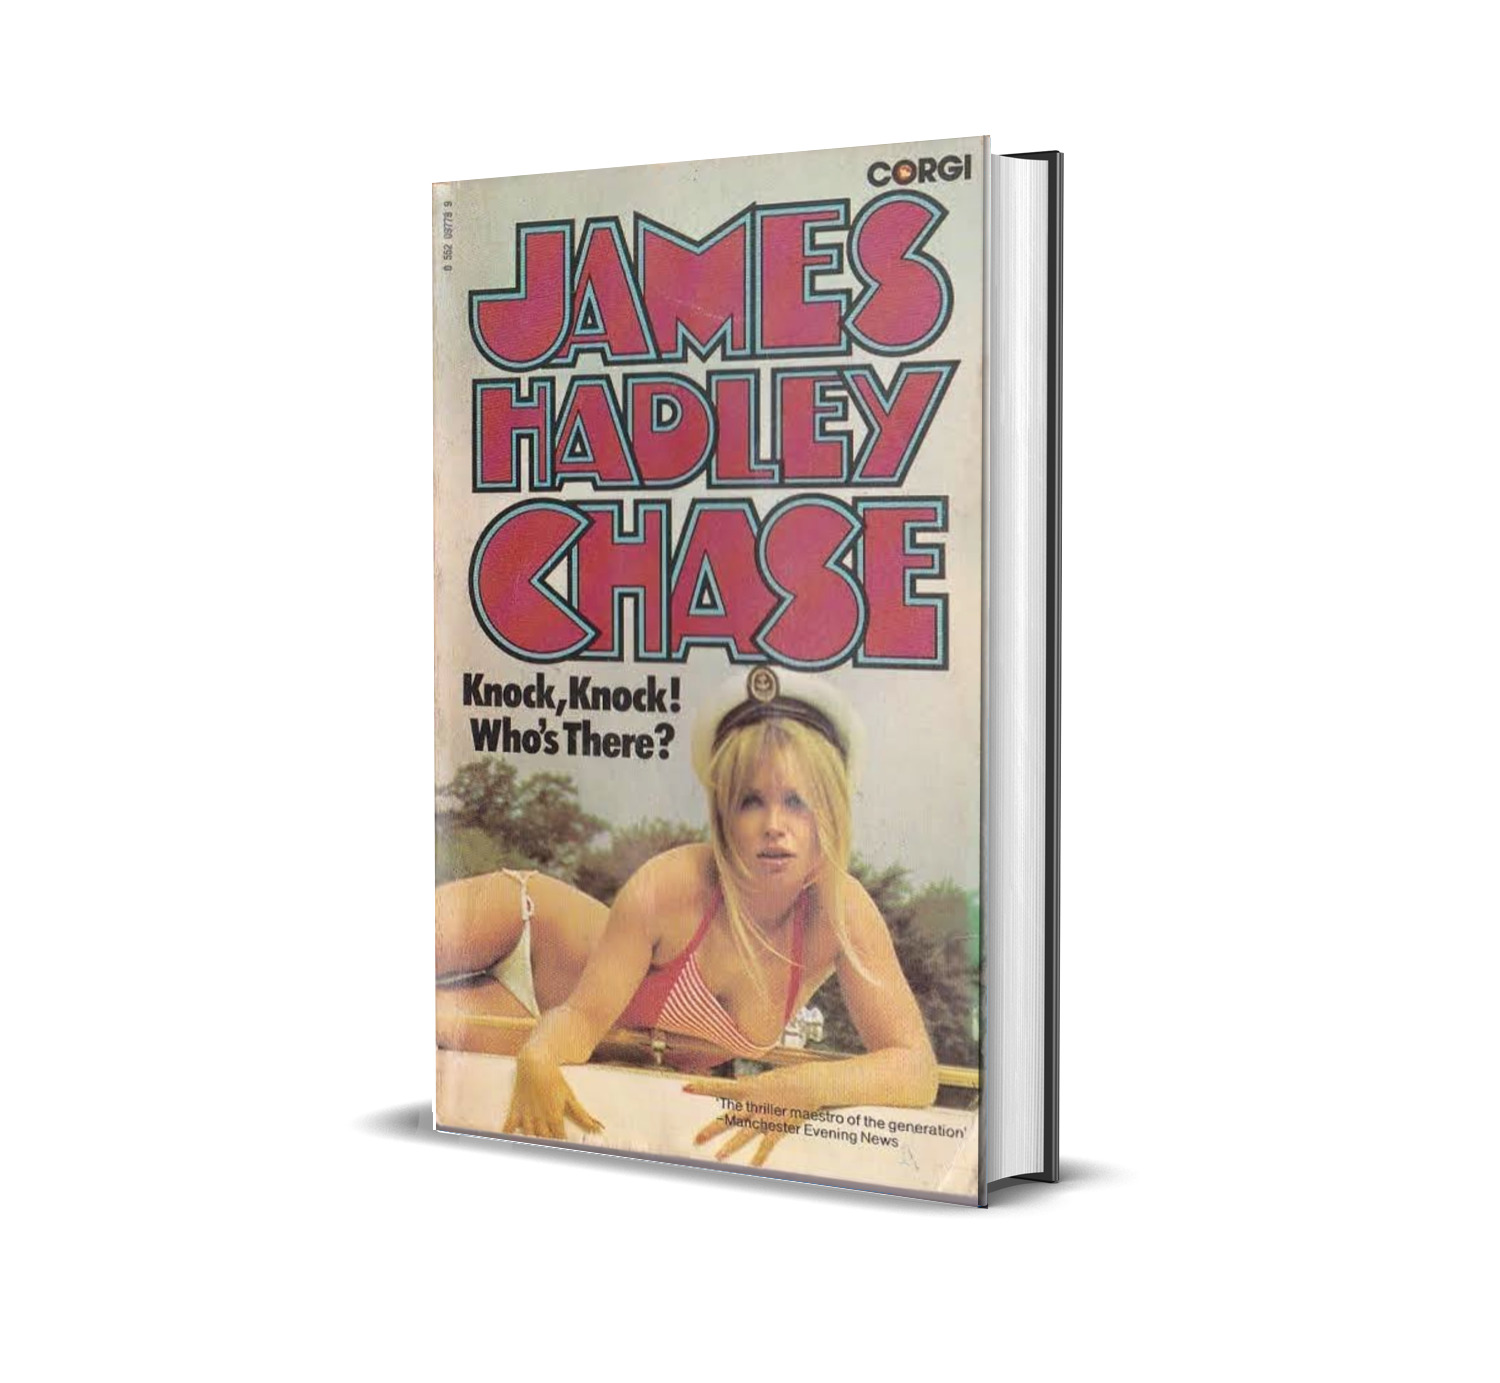 KNOCK KNOCK WHO'S THERE JAMES HADLEY CHASE